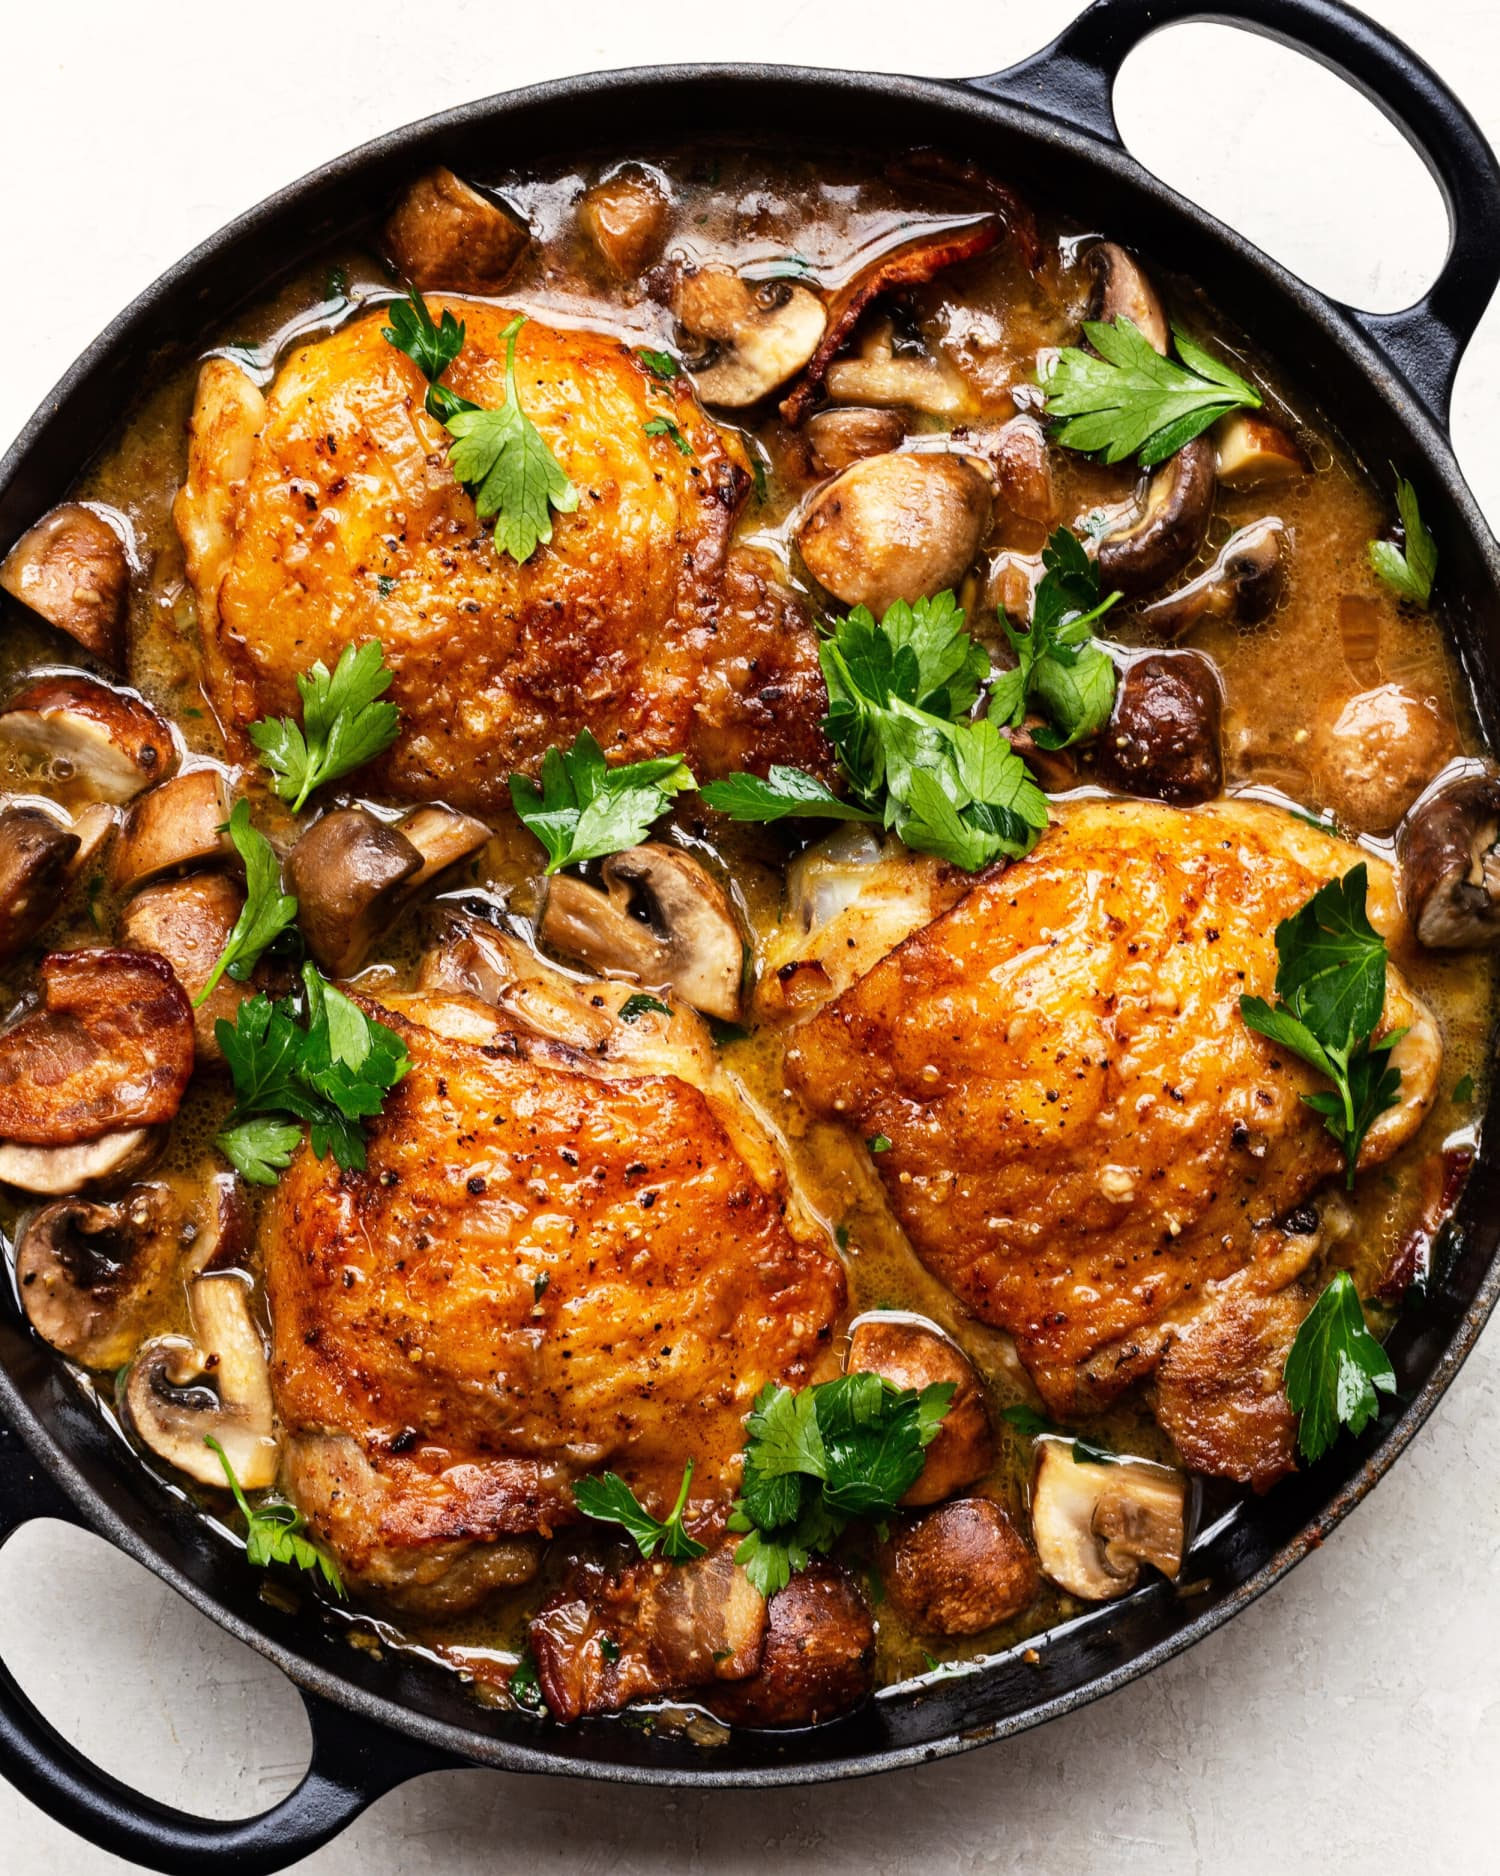 Braised Chicken with Mushrooms Looks as Good as It Tastes